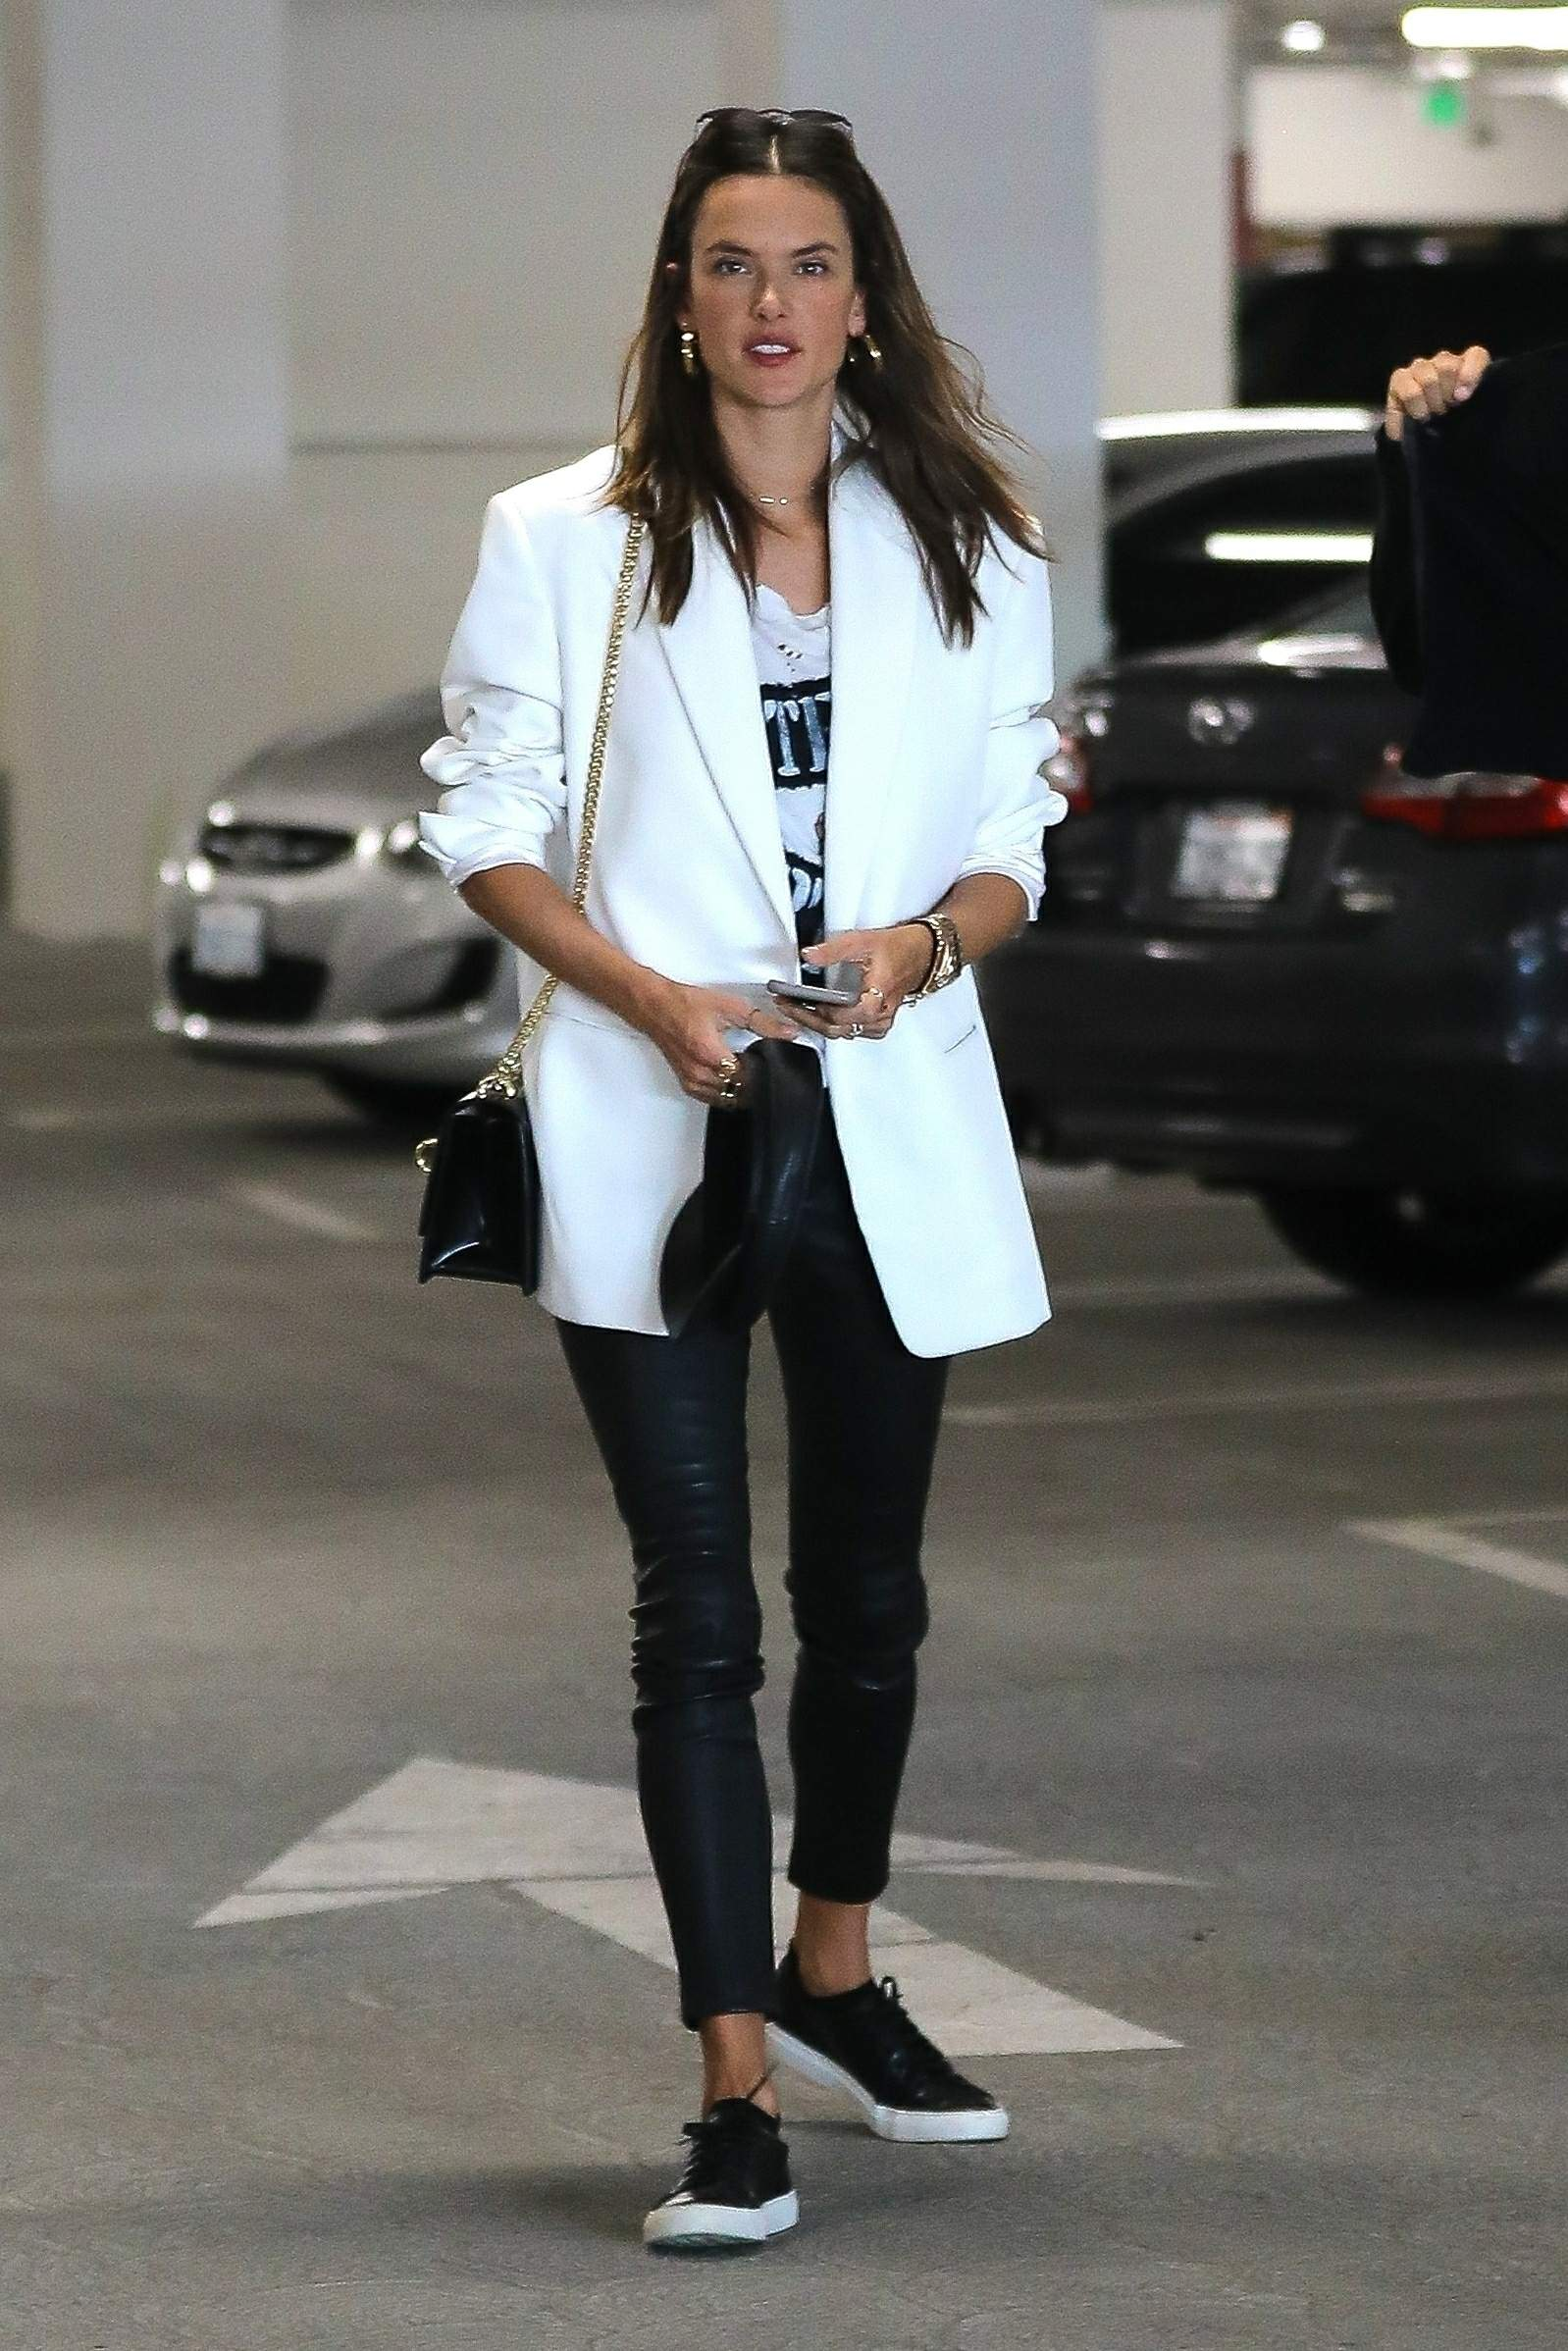 Alessandra Ambrosio has a lunch date